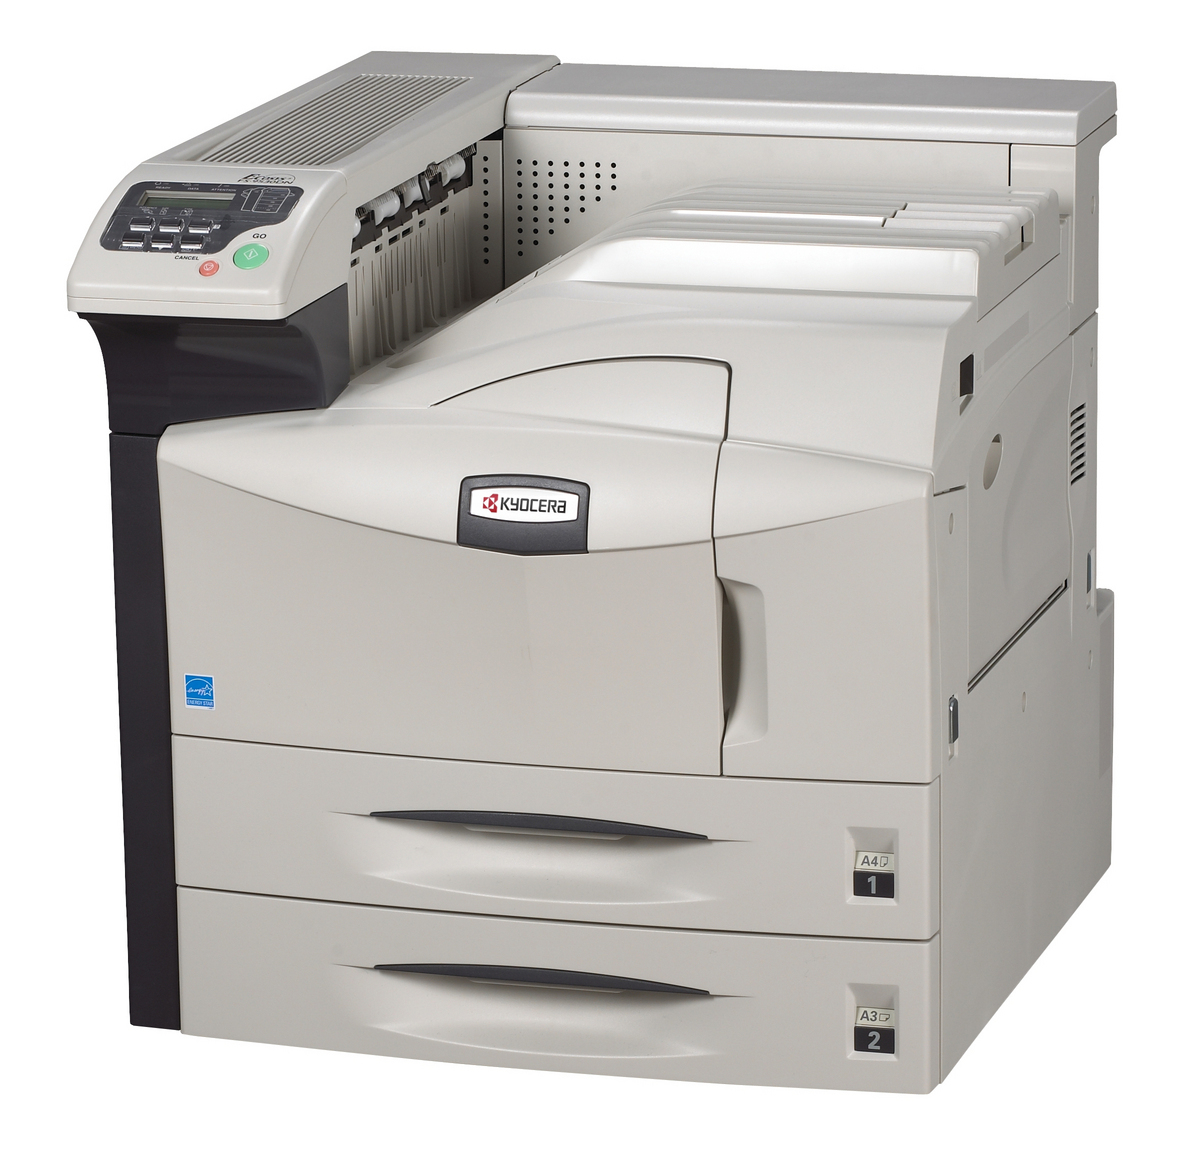 Kyocera Fs-9530DN Mono Laser Printer 1102G13NL0 - Refurbished